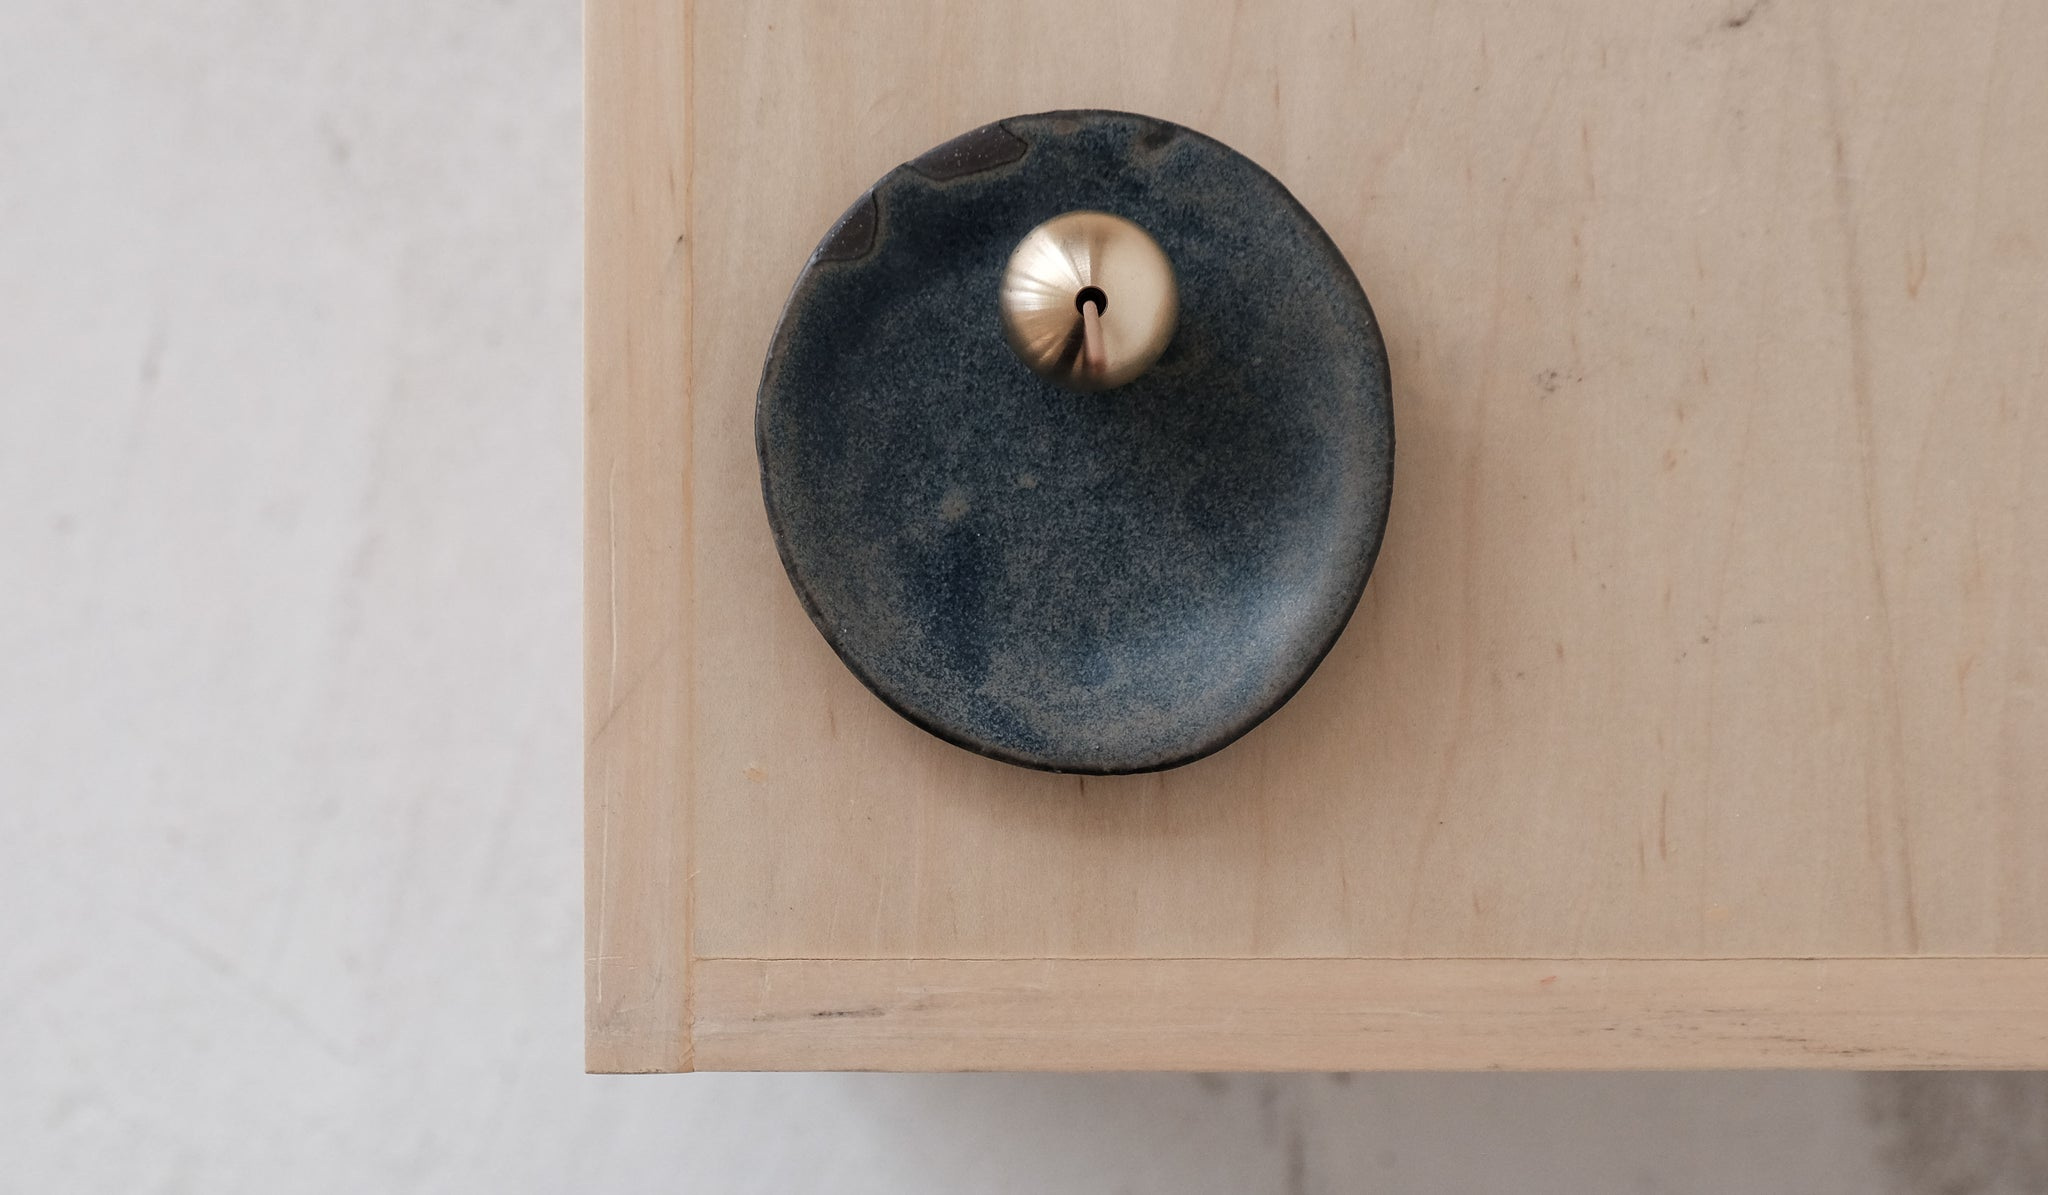 Mondays Projects Blue Ceramic Dish & Brass Ball Incense Holder Set